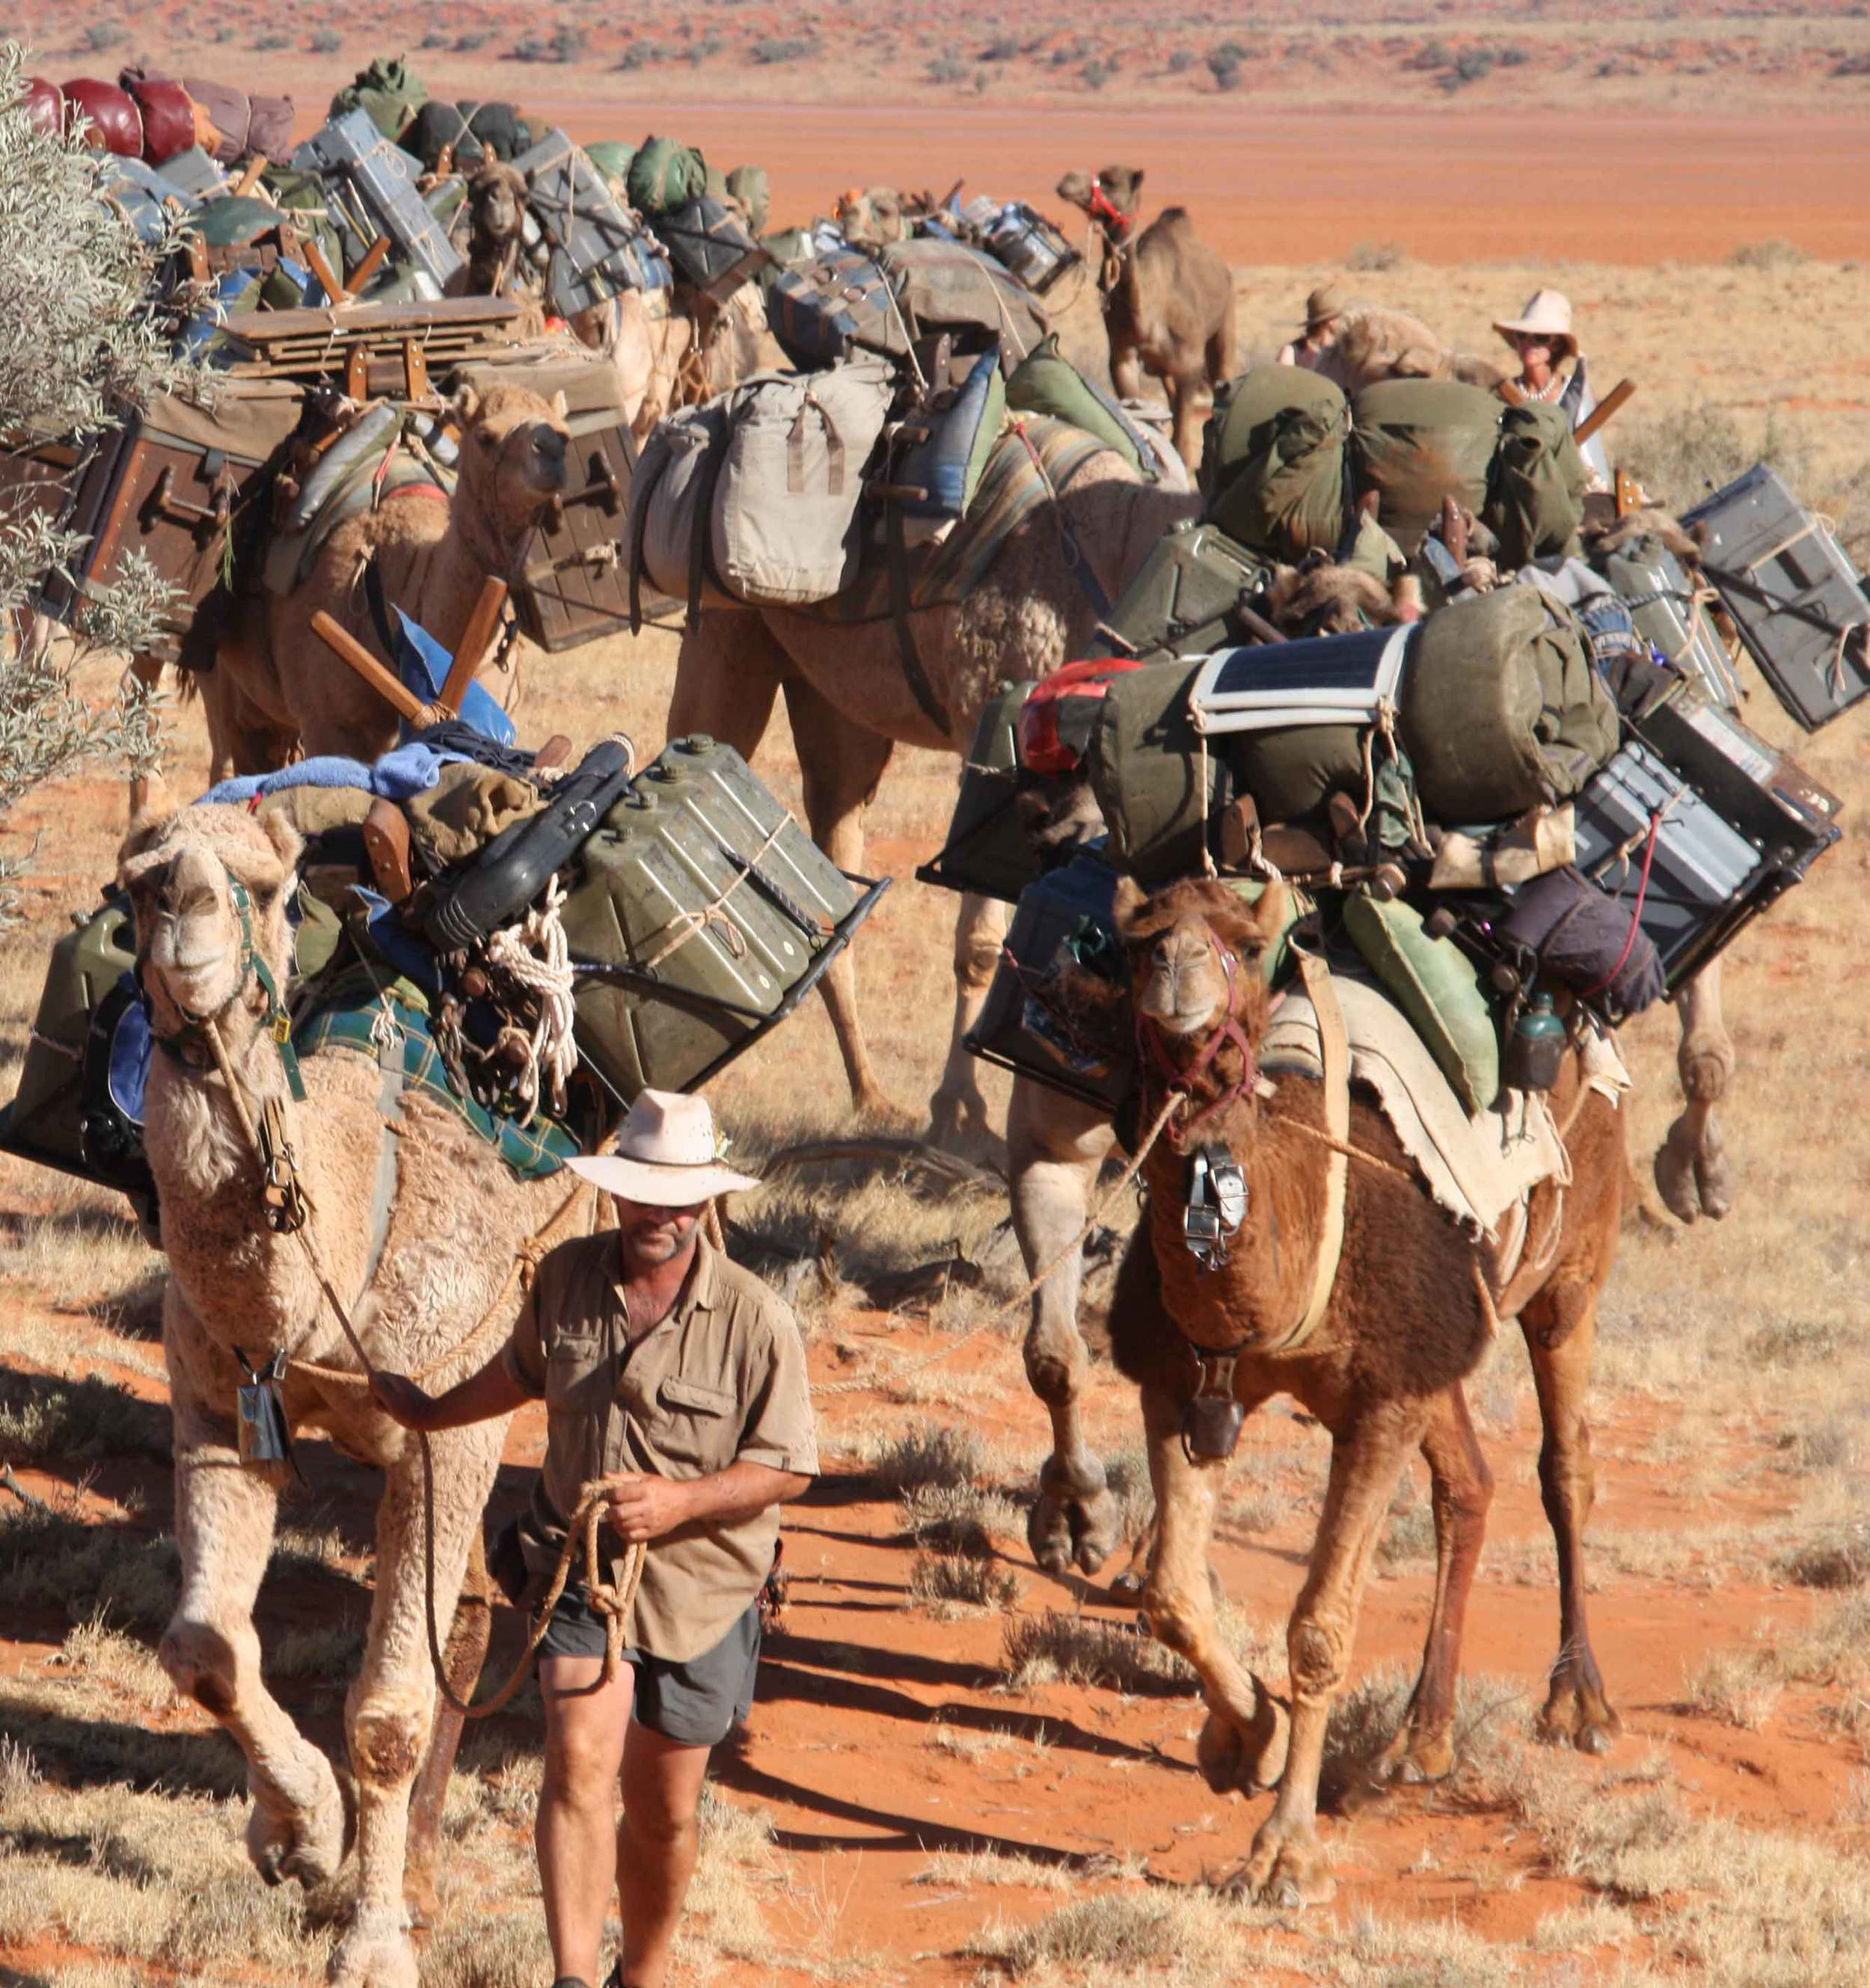 Andrew leads the camel team, 2010.